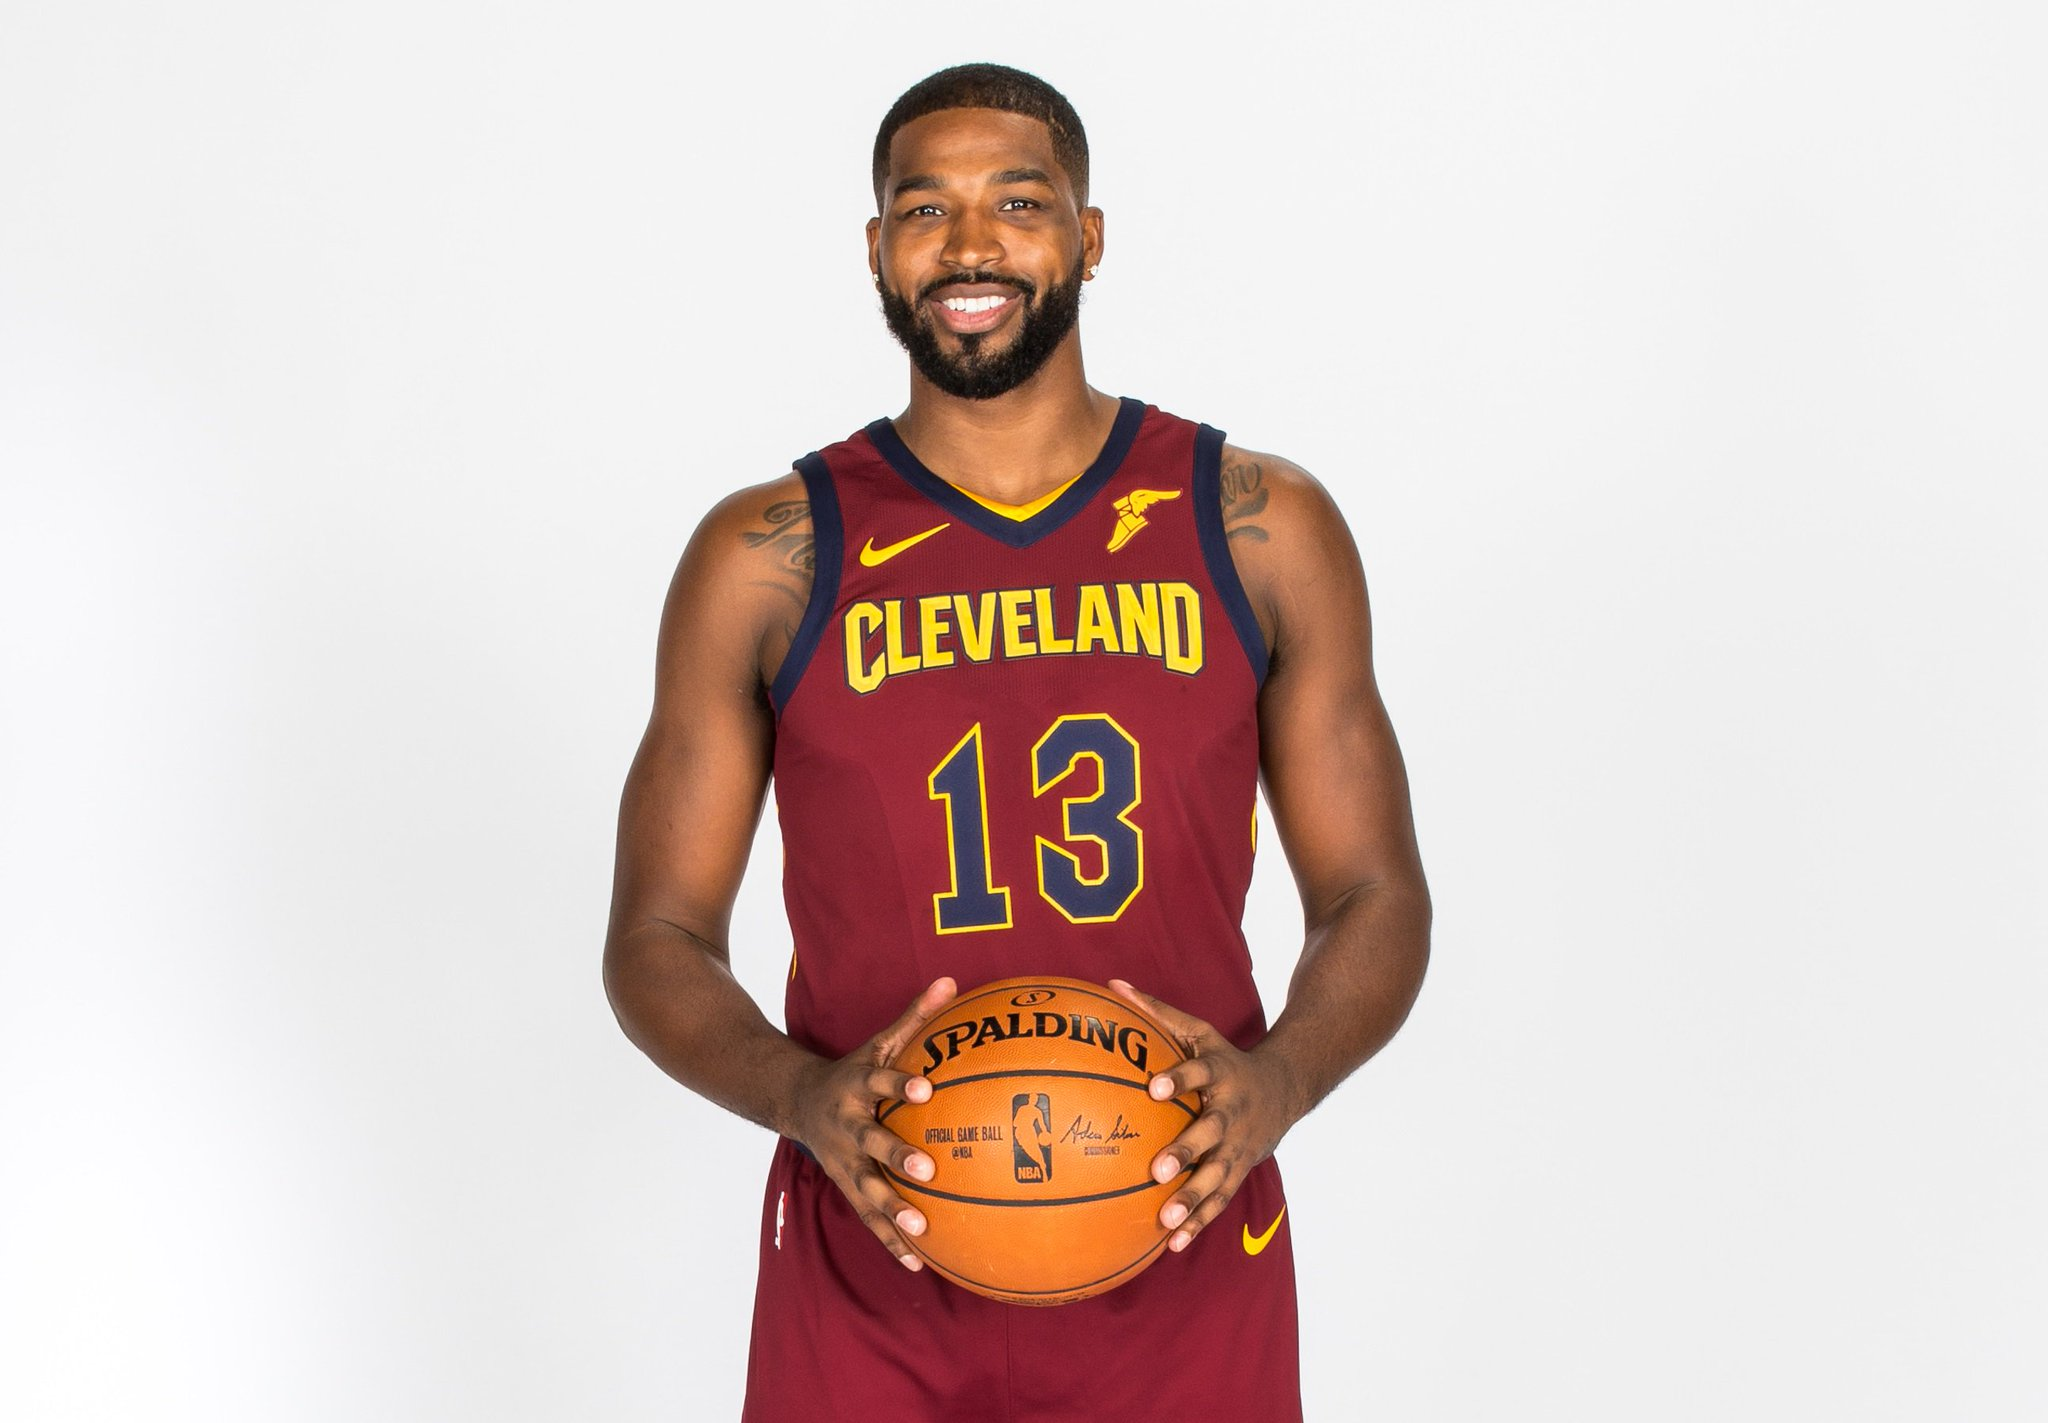 Join us in wishing @RealTristan13 of the @cavs a HAPPY 27th BIRTHDAY!   #NBABDAY #AllForOne https://t.co/Ee9D2ovQBQ